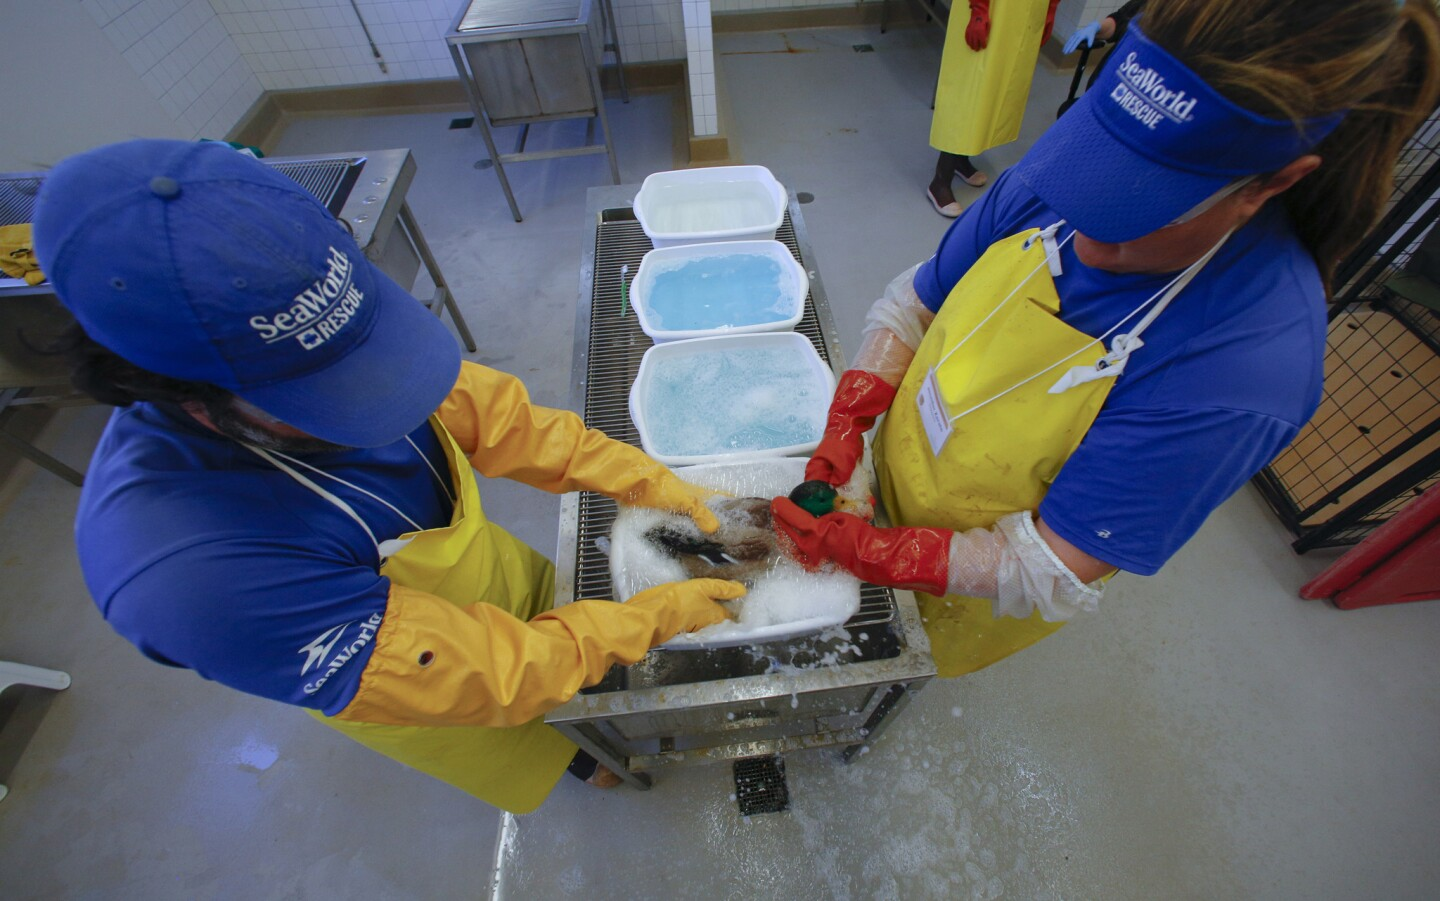 Volunteer first responders, wash the oil of a duct during a simulated cleaning. On Wednesday SeaWorld conducted an oiled wildlife exercise at SeaWorld.